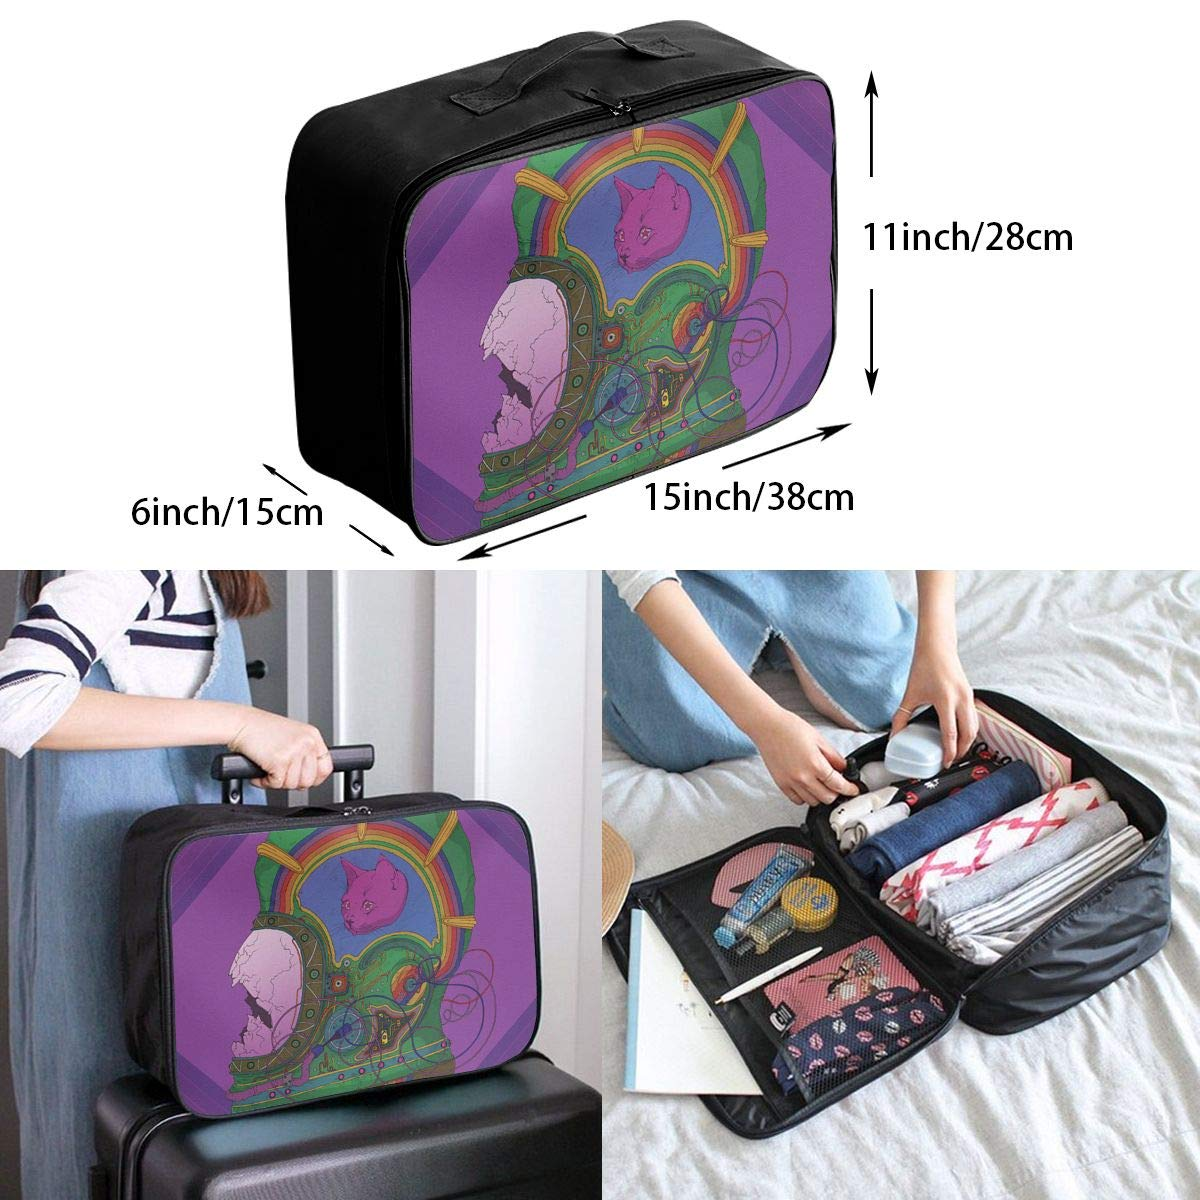 Travel Luggage Duffle Bag Lightweight Portable Handbag Abstract Space Astronaut Large Capacity Waterproof Foldable Storage Tote